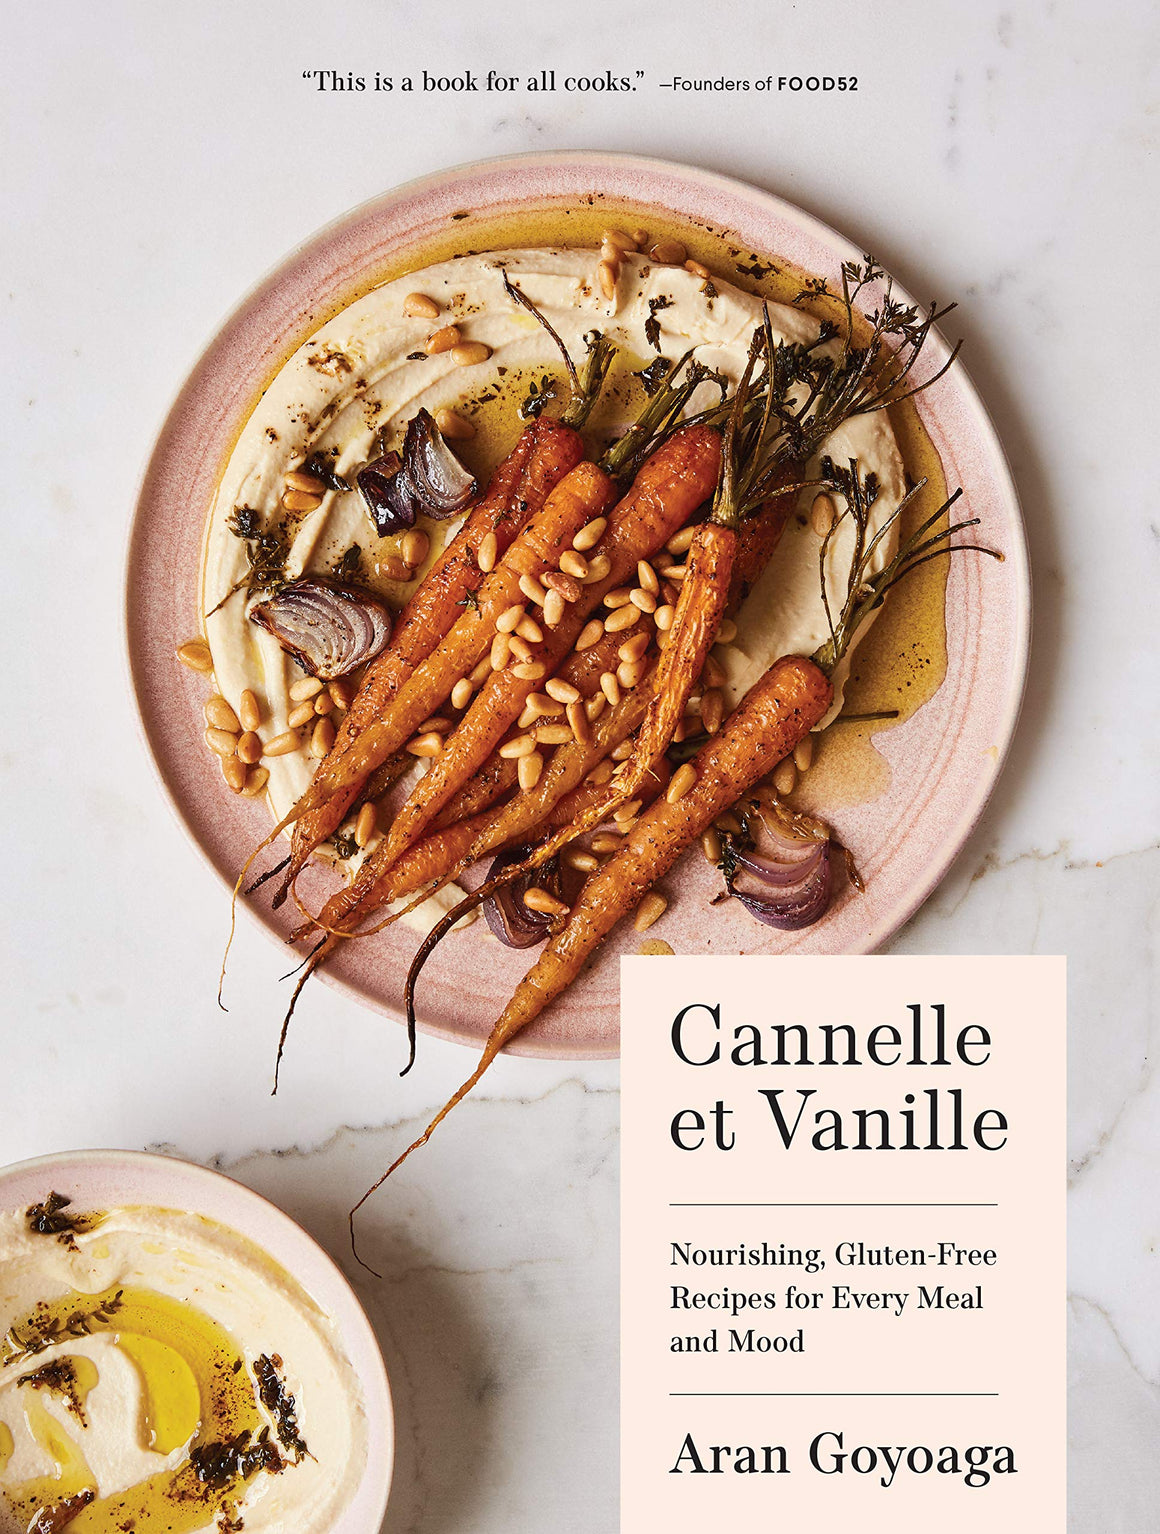 Aran Goyoaga. Cannelle et Vanille: Nourishing, Gluten-Free Recipes for Every Meal and Mood